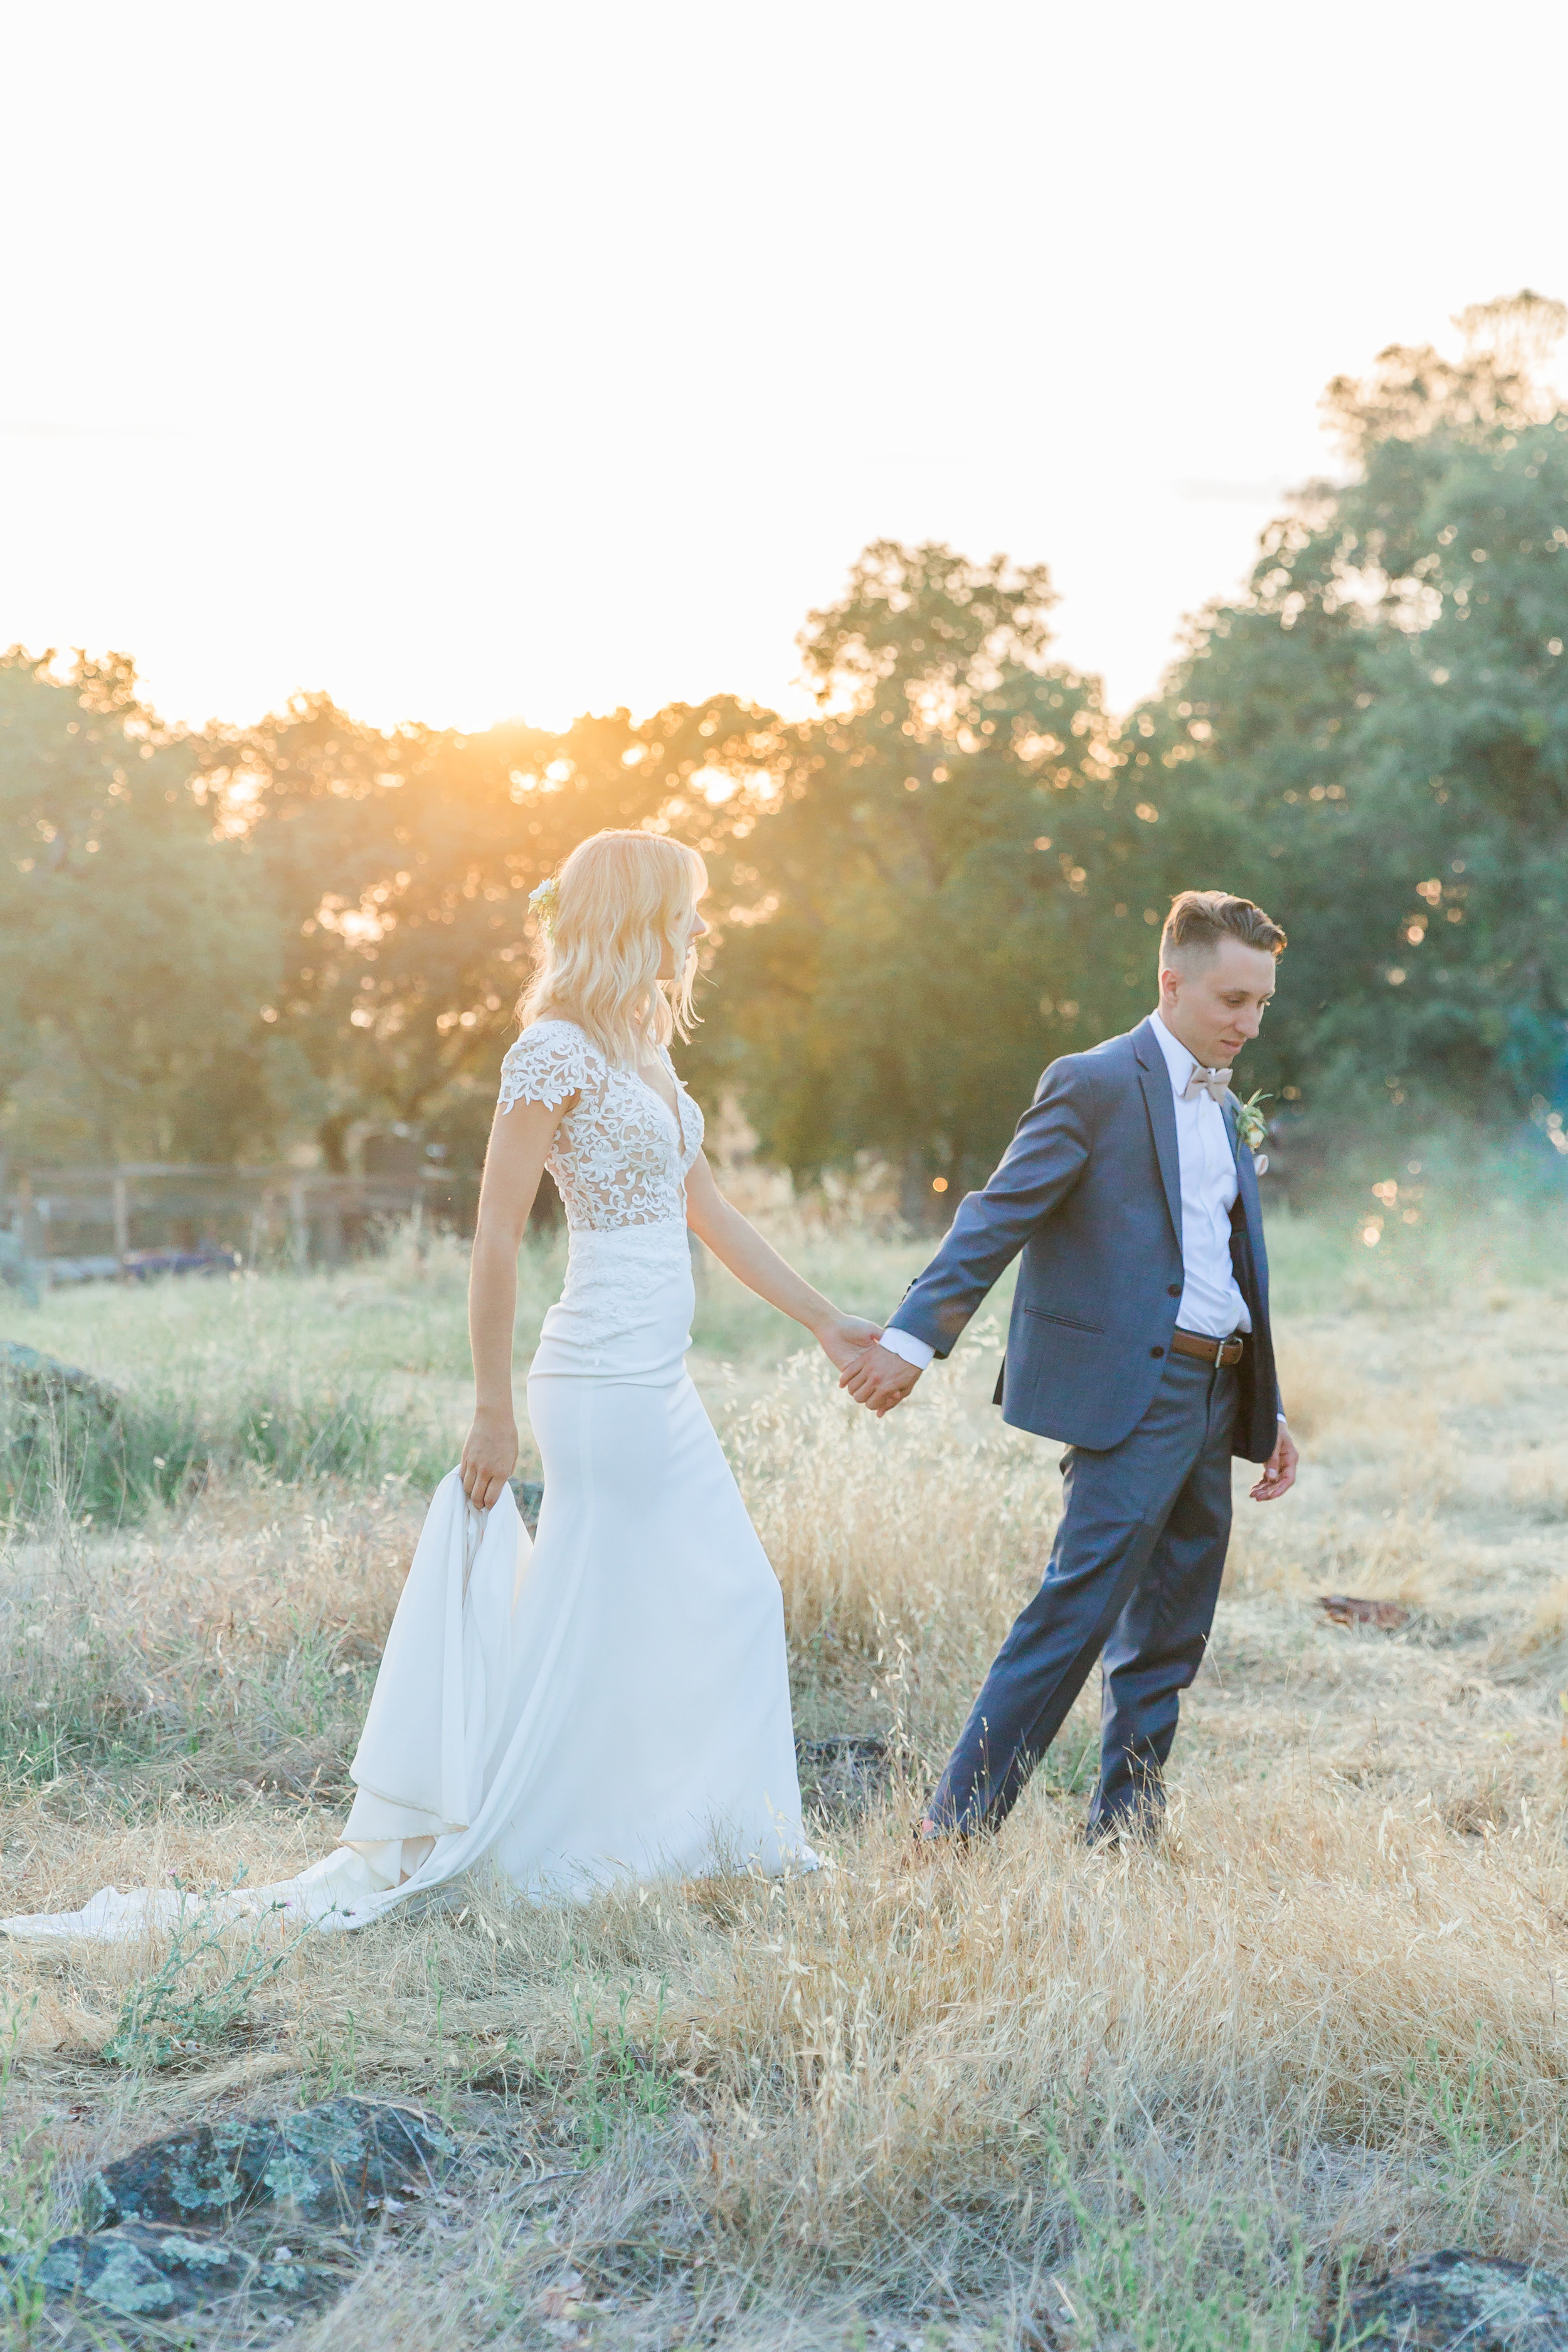 Kaitlynn and Colby - Married - Sneaks - Lauren Alisse Photography-107.jpg